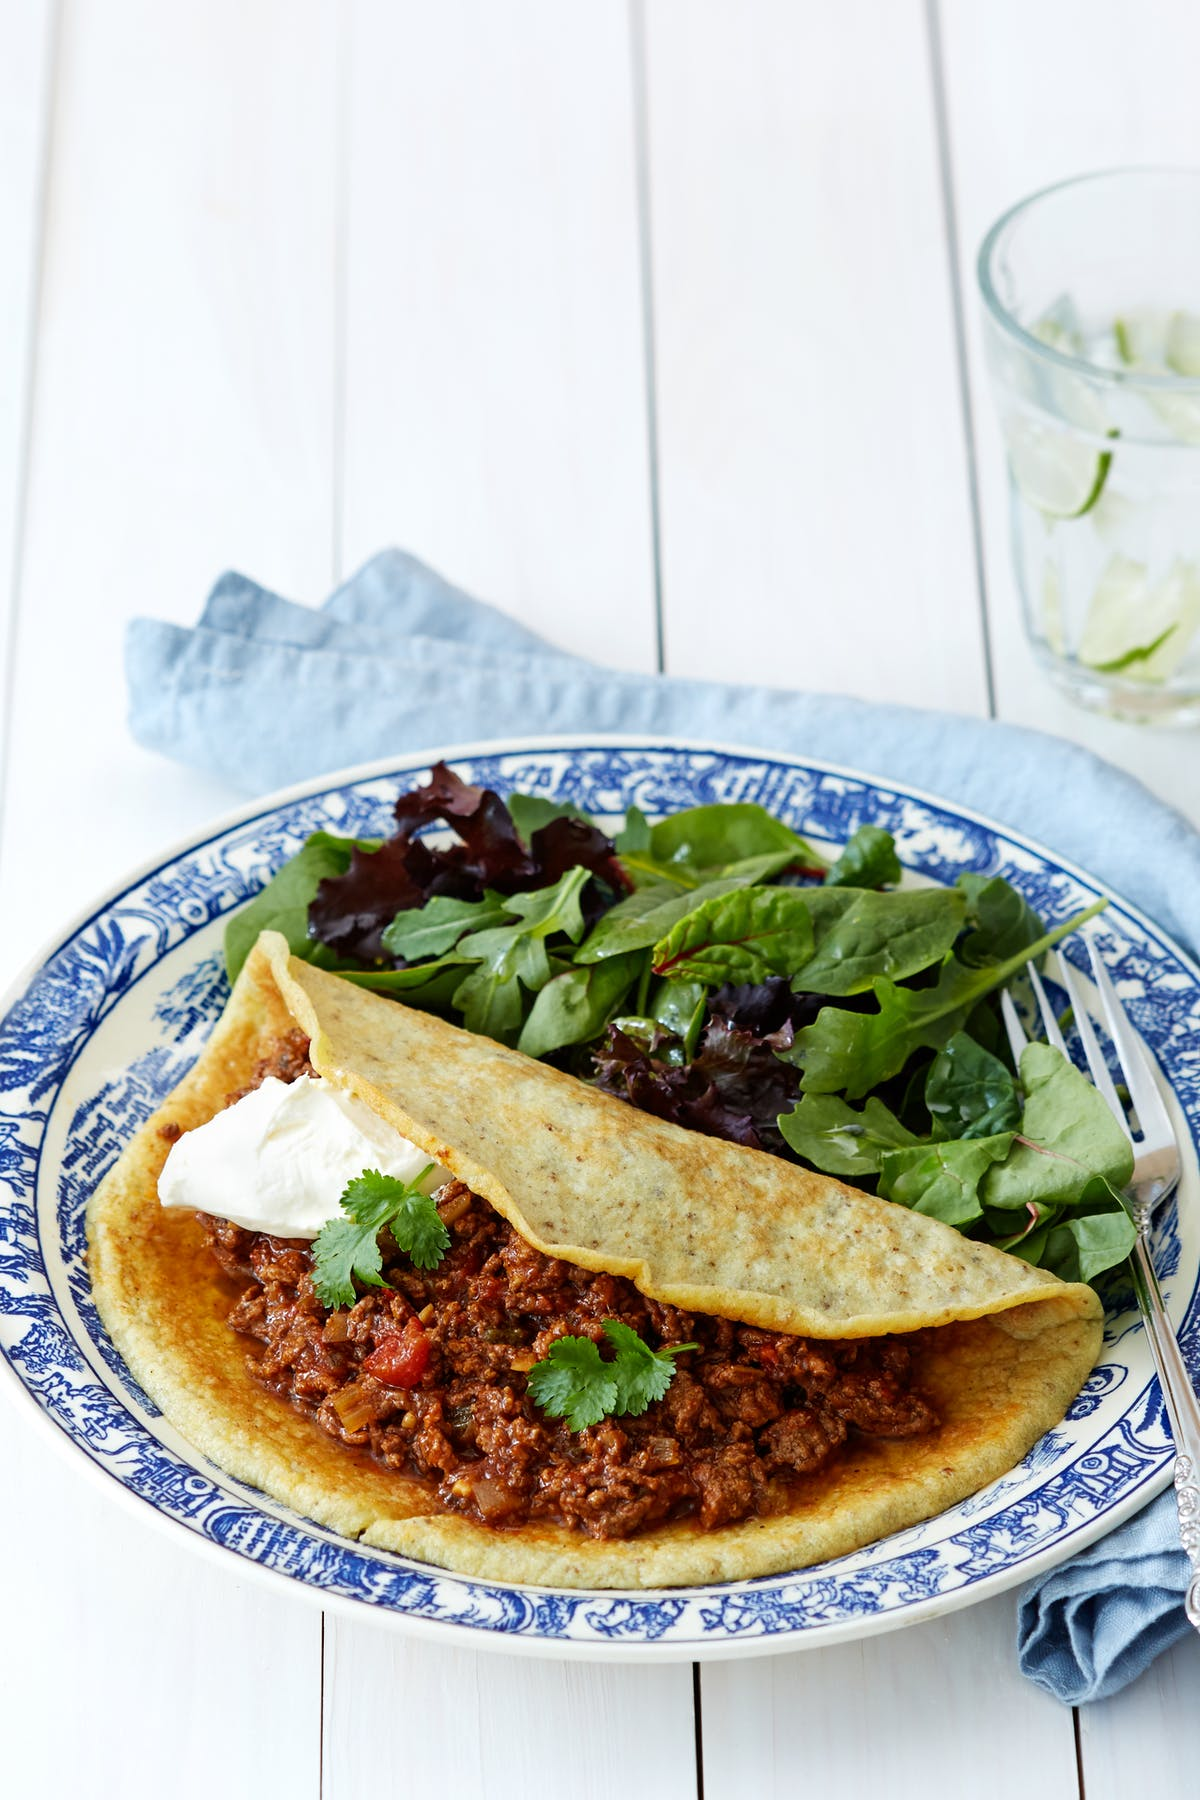 Keto chili and tortillas